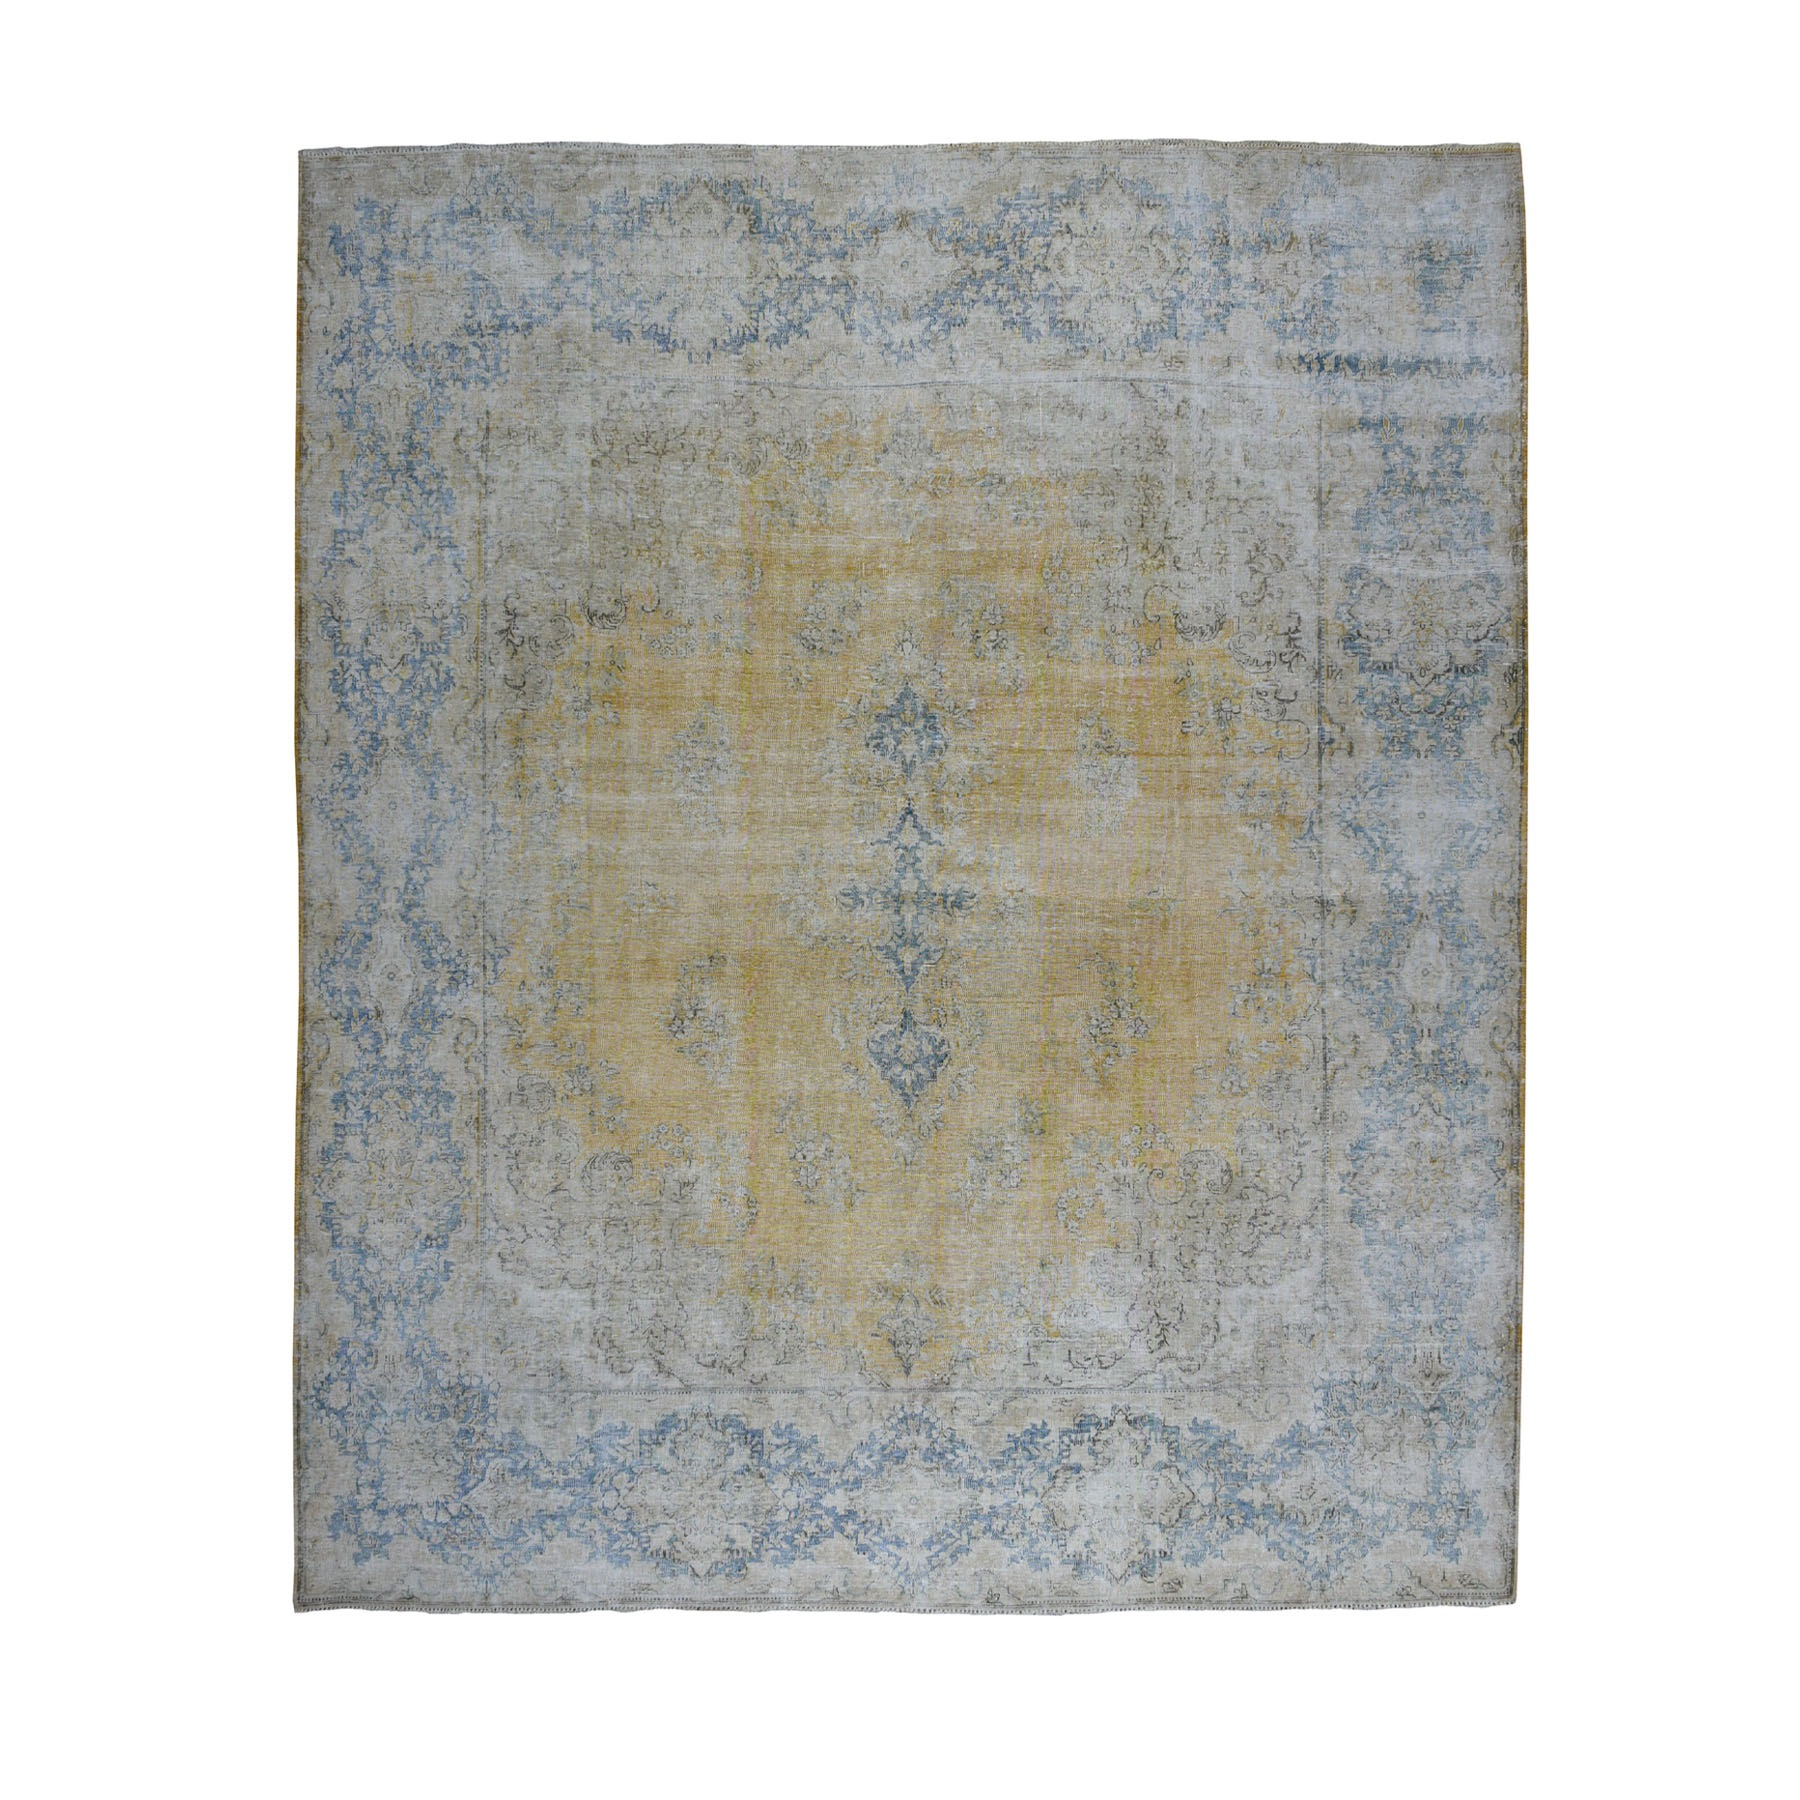 """9'10""""x10'8"""" Squarish Gold Persian Kerman Vintage And Worn Down Pure Wool Hand Knotted Oriental Rug"""